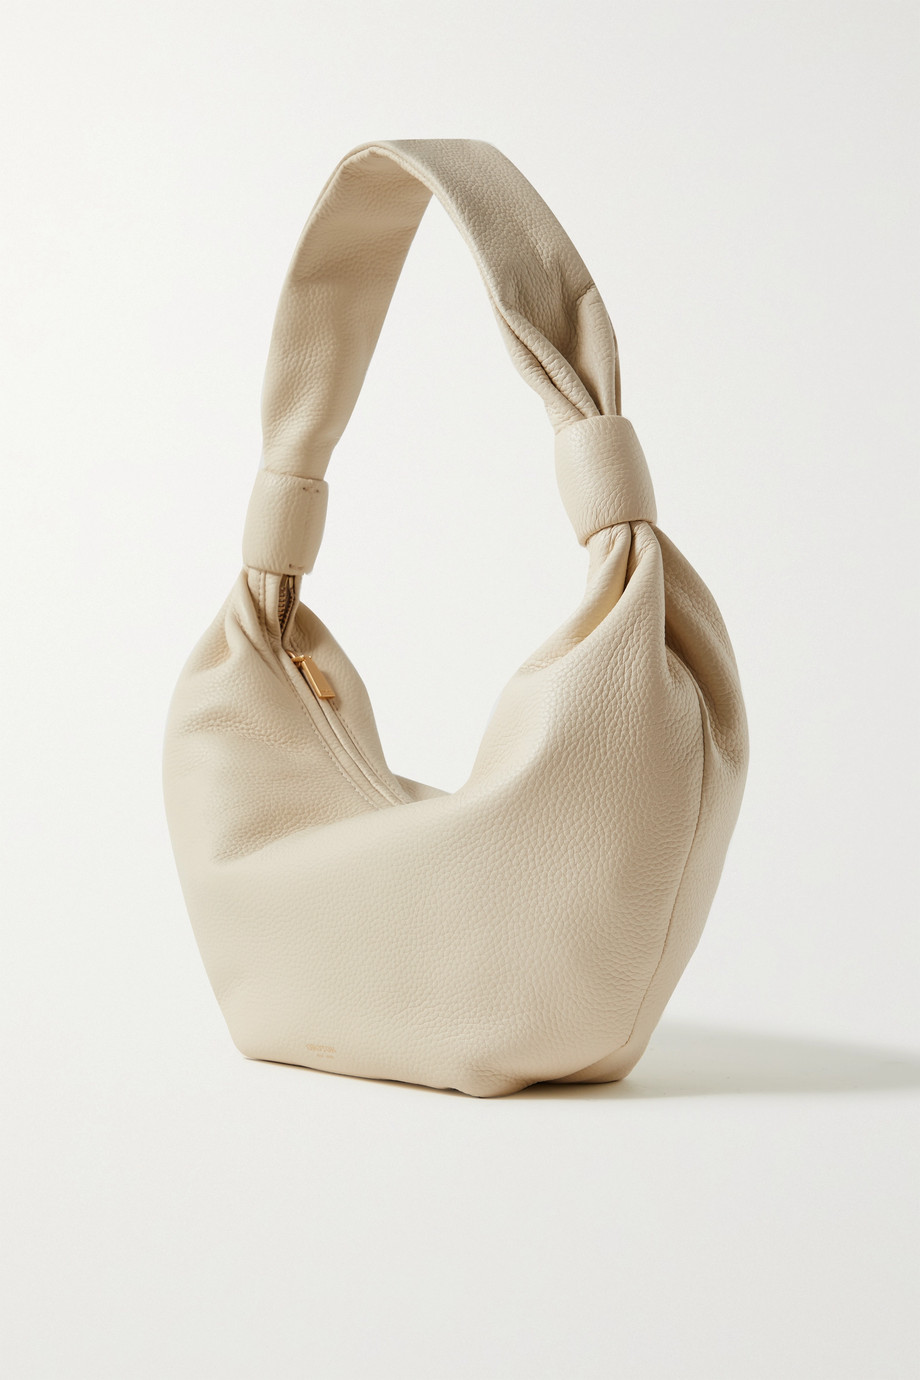 OROTON Malin knotted textured-leather shoulder bag